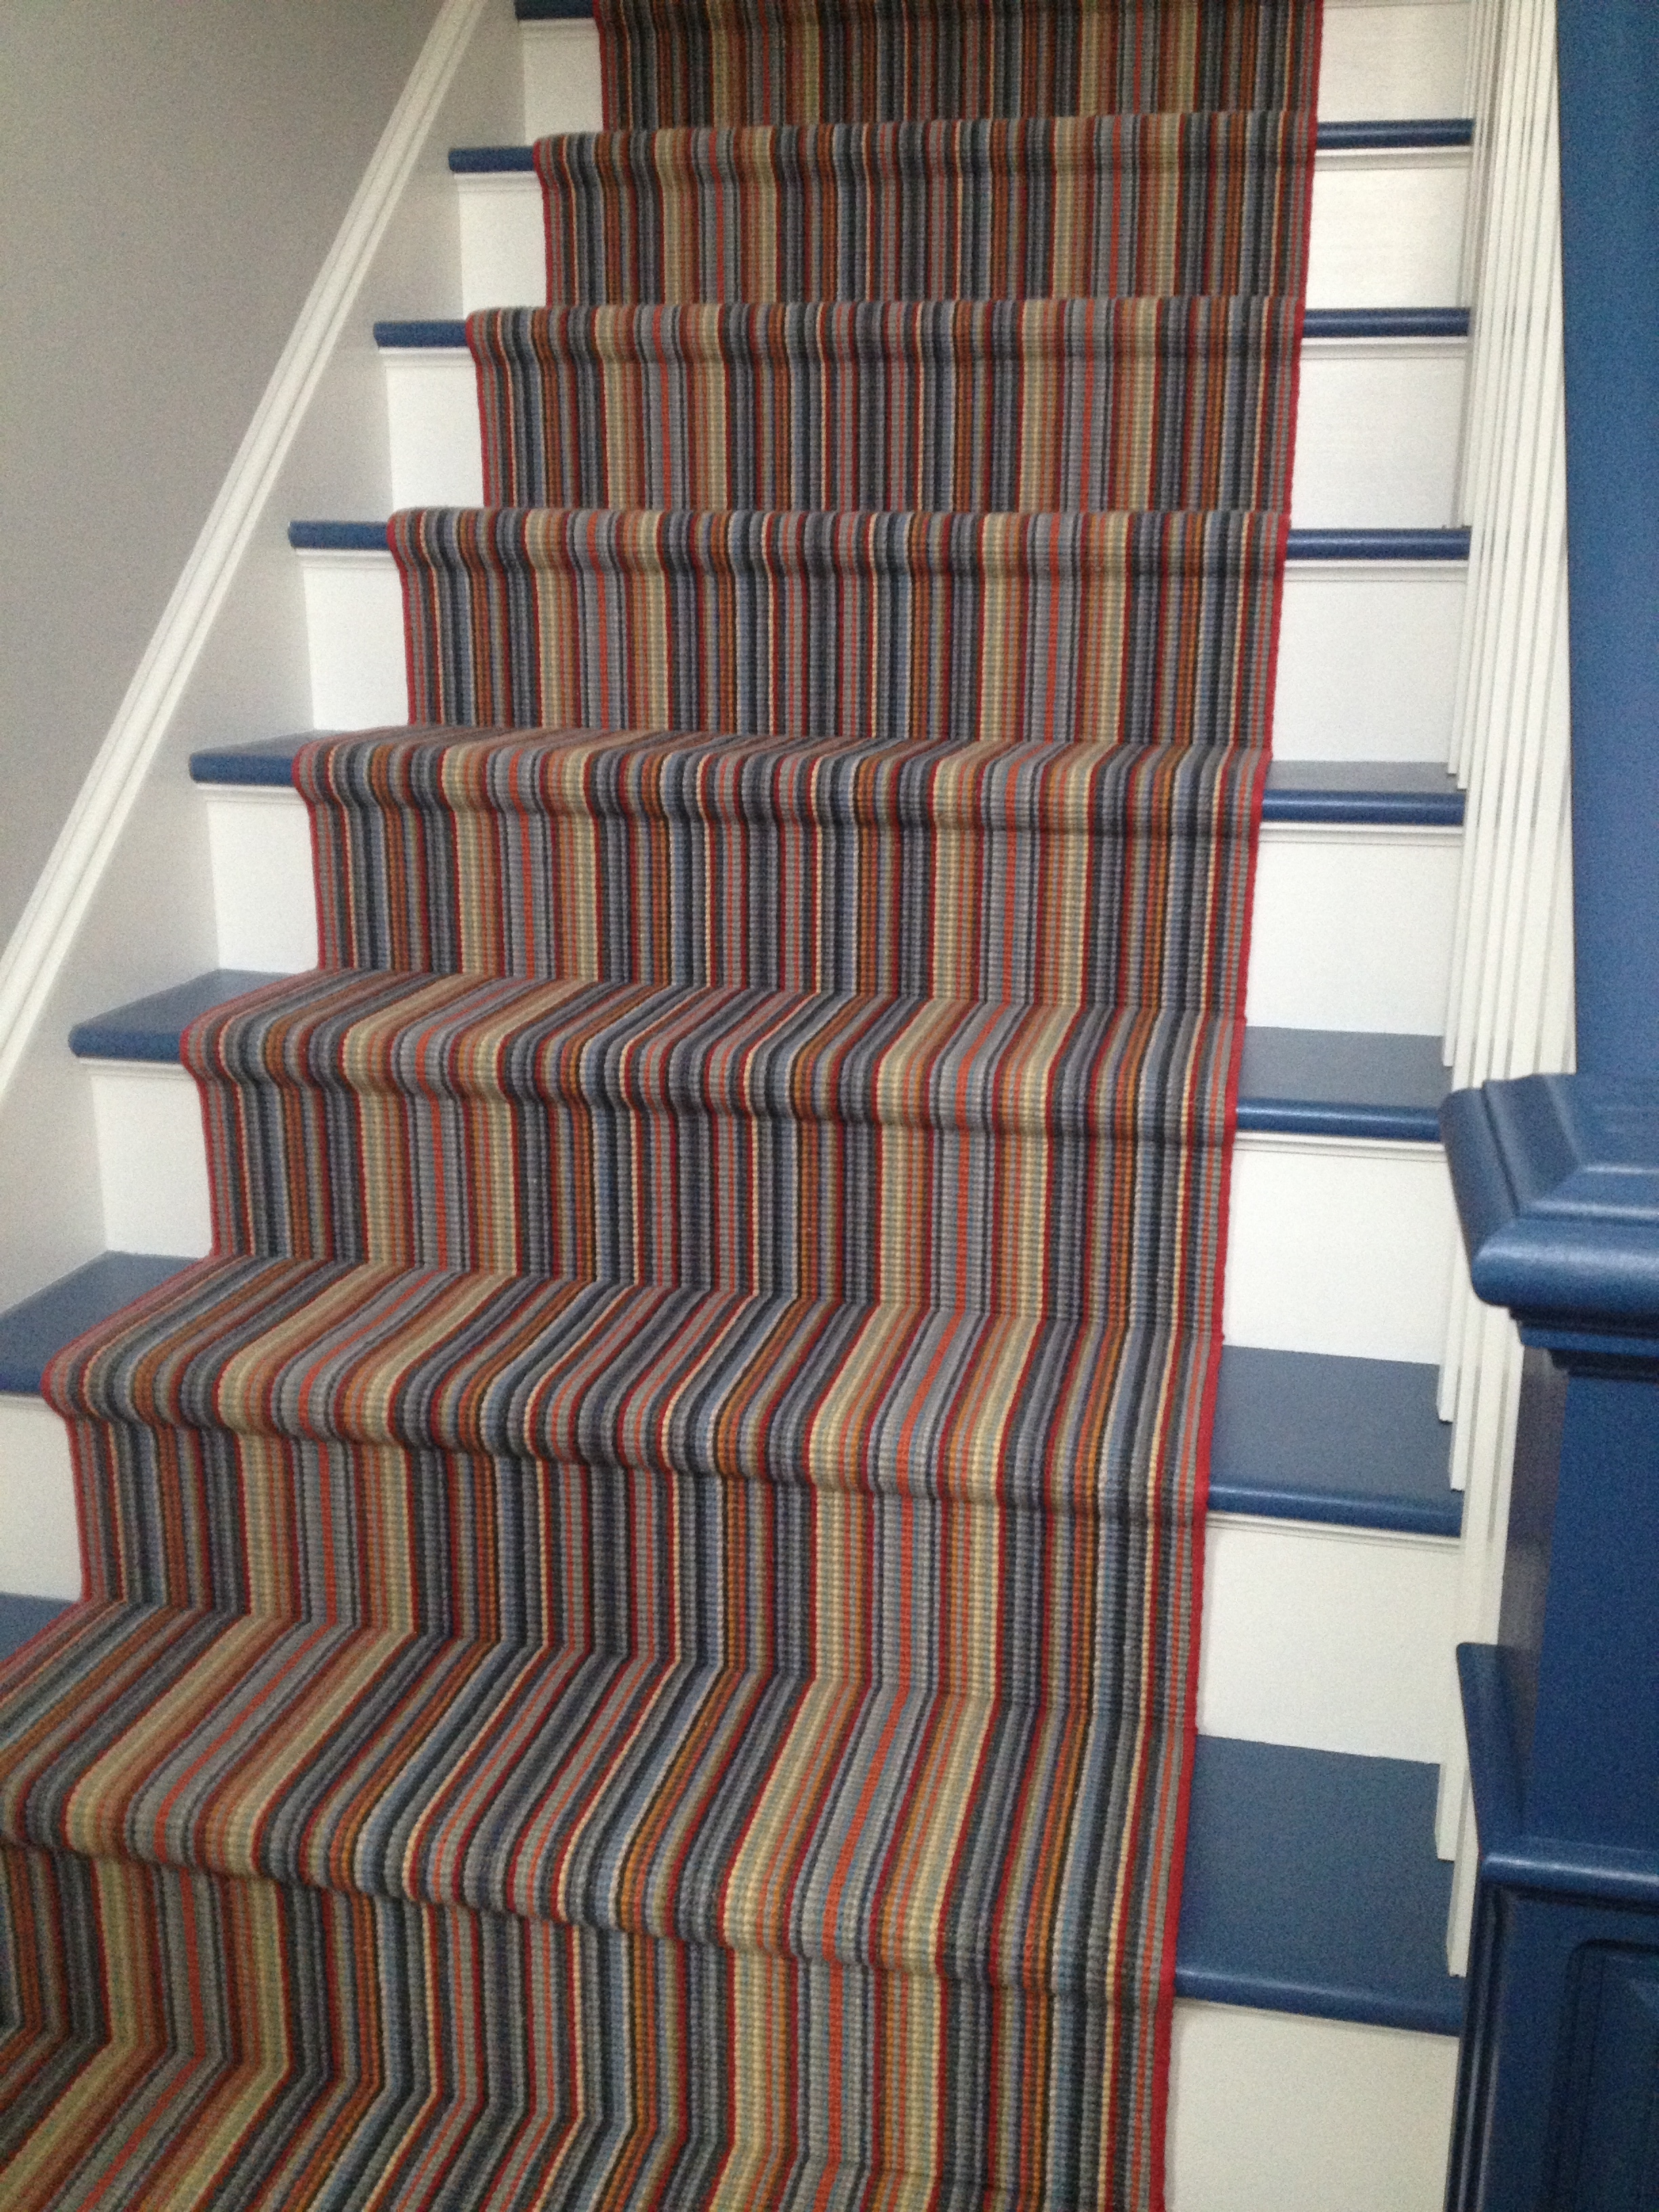 Before the renovation of this house, these wood treads leading to a play room were a hazard for the 3 active boys that vacationed here. By painting the treads and adding this bound runner from  Weave Tuft we not only added stability but FUN STRIPES!